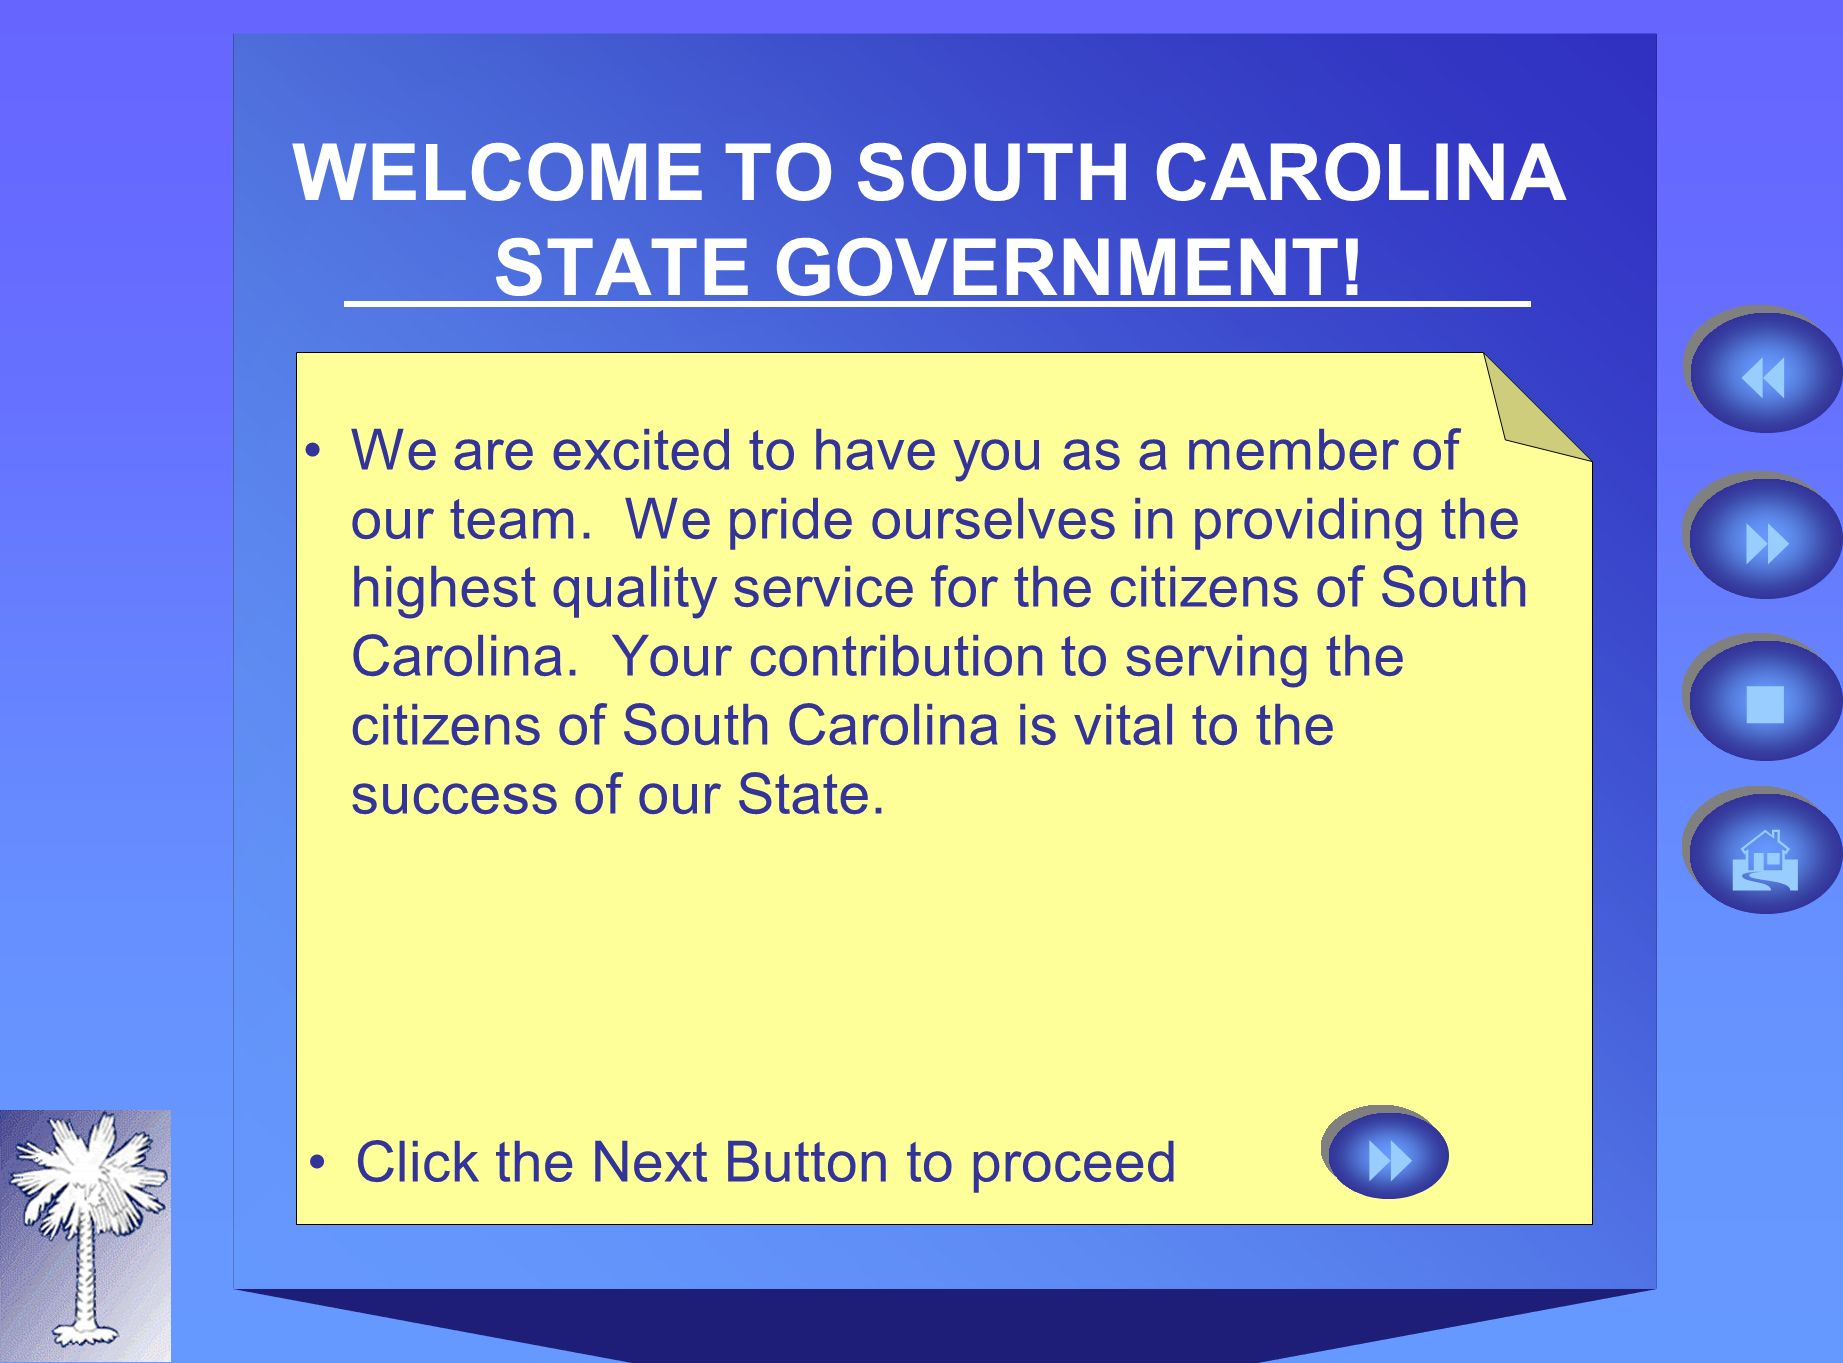 WELCOME TO SOUTH CAROLINA STATE GOVERNMENT. We are excited to have you as a member of our team.